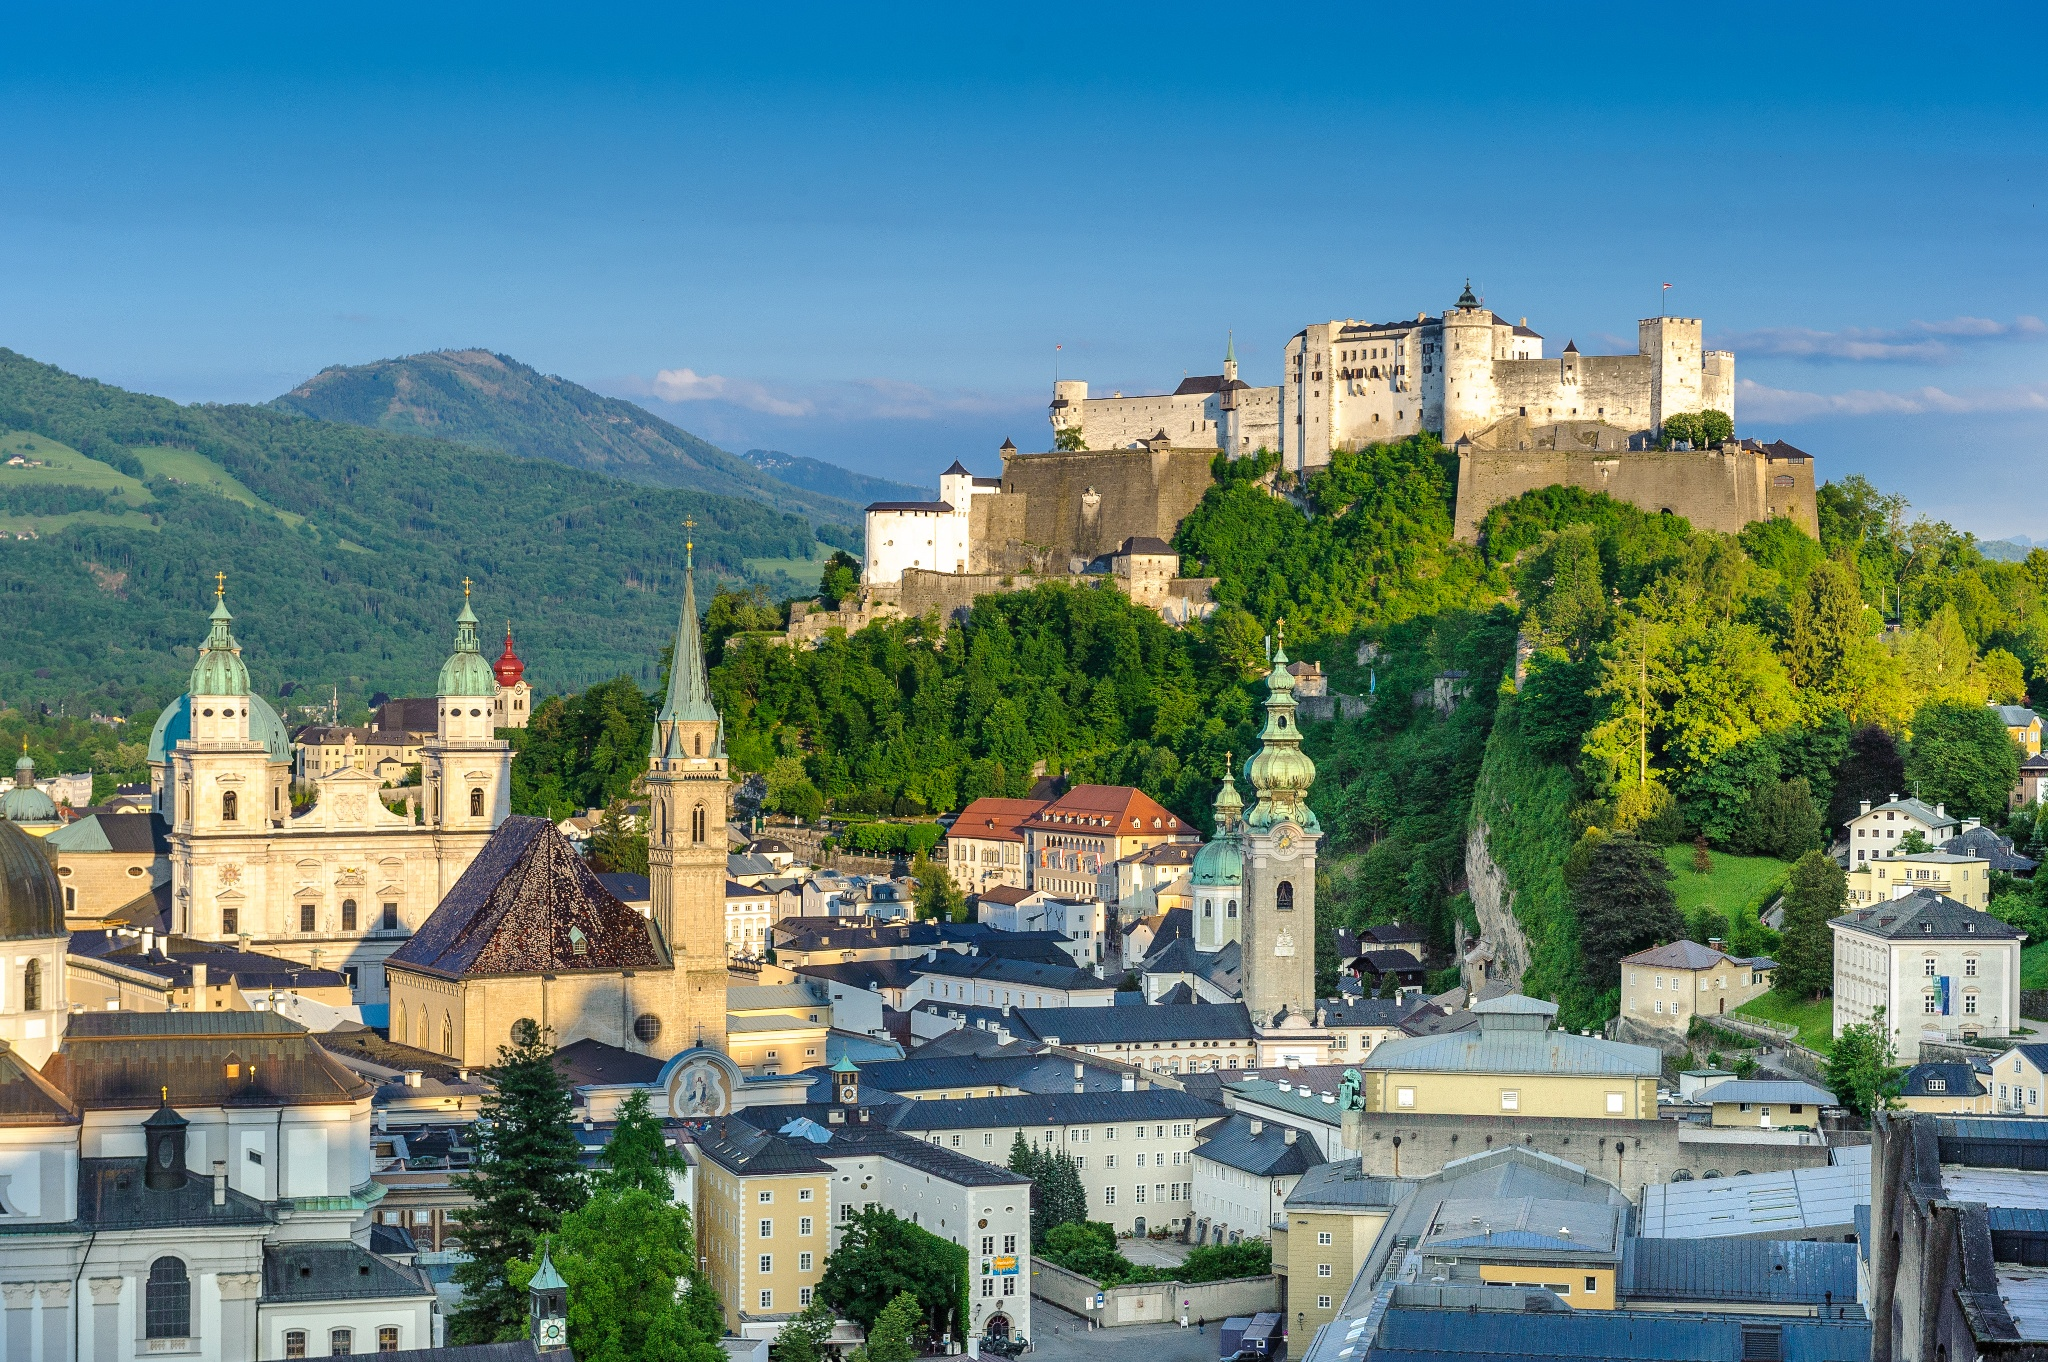 Fortress Hohensalzburg • Stronghold » outdooractive.com